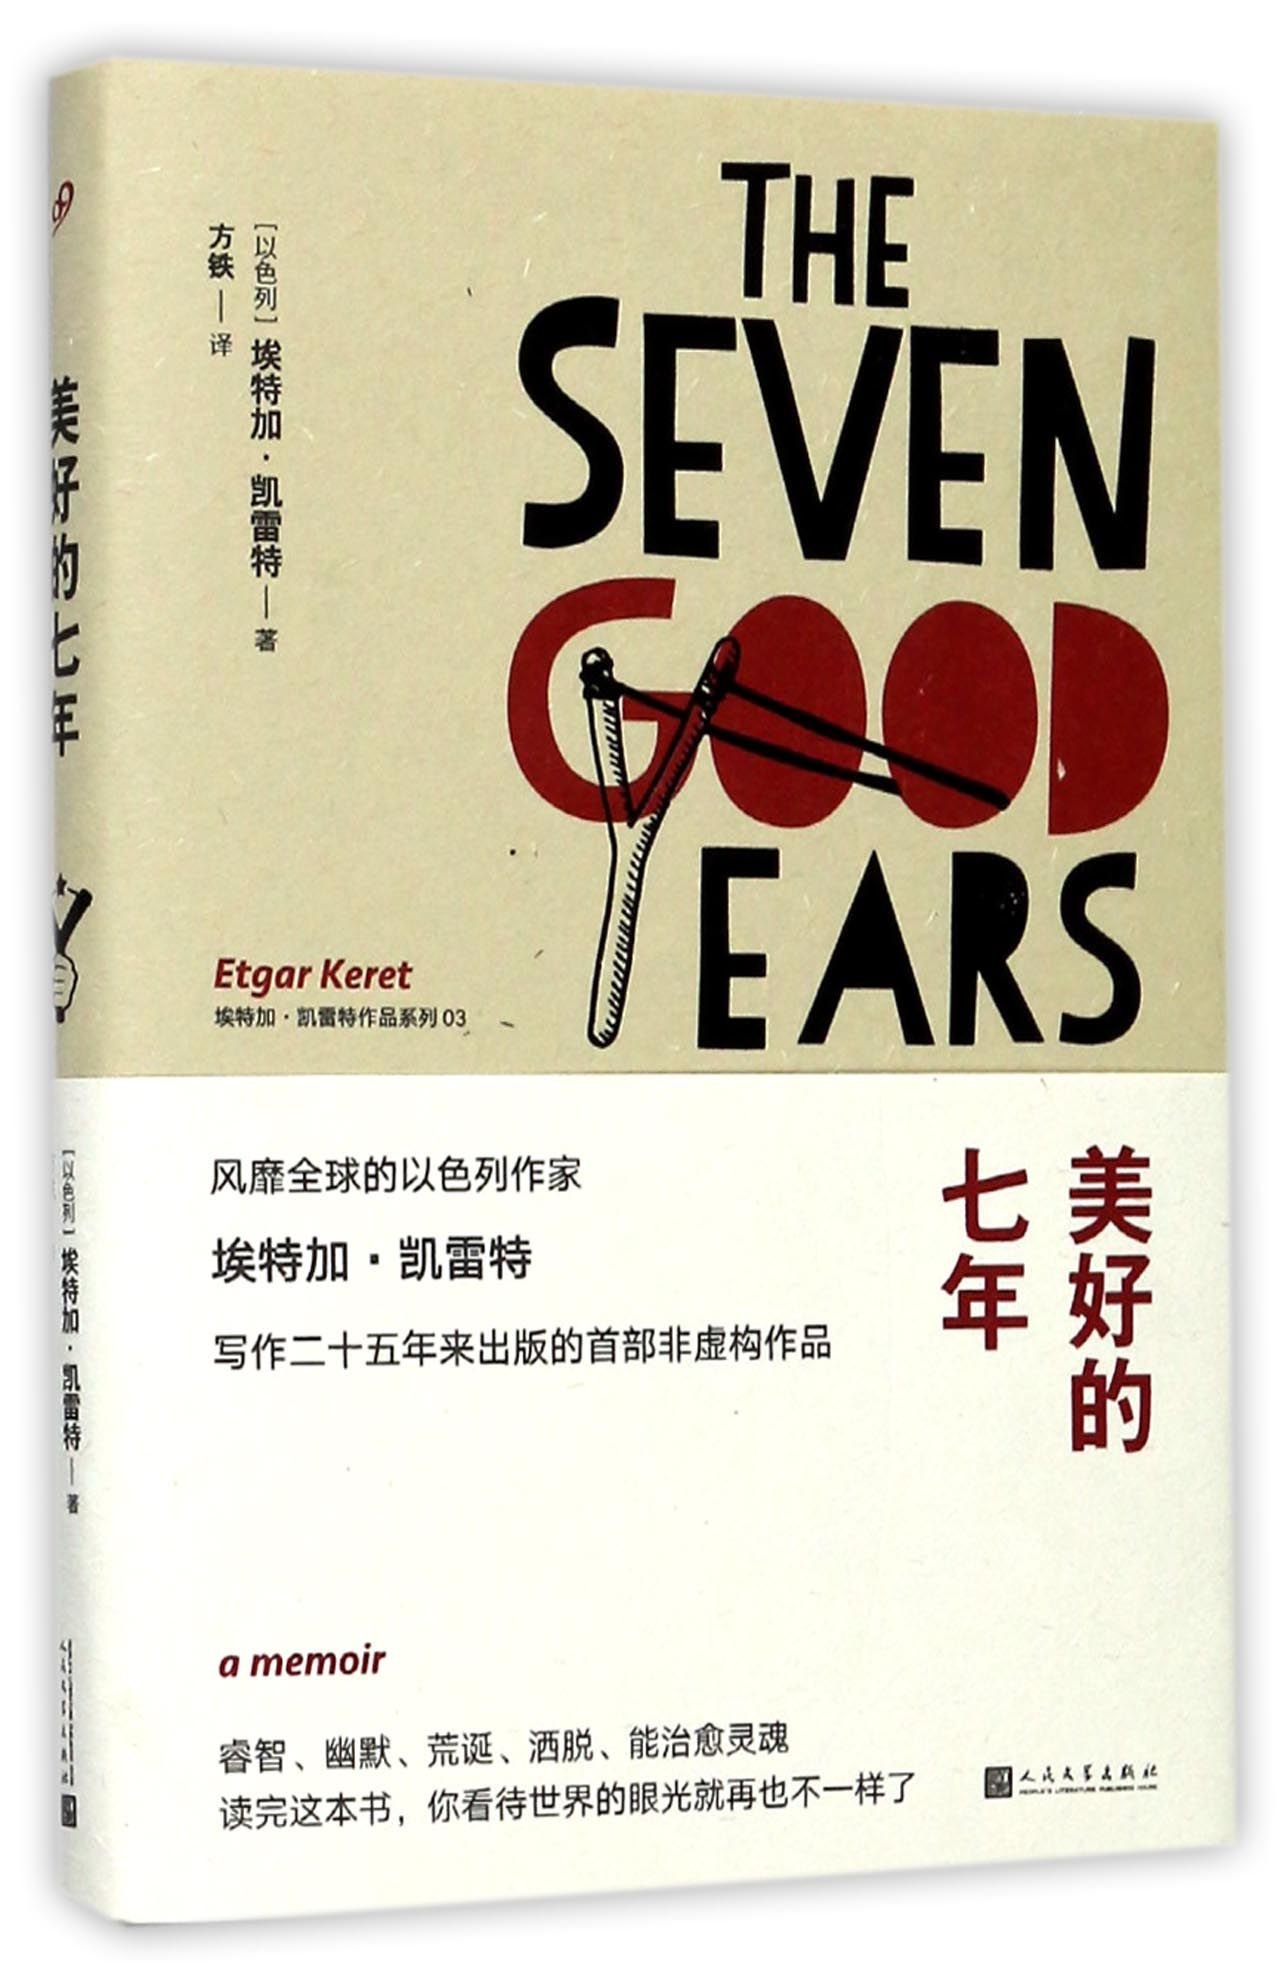 Read Online The Seven Good Years (Chinese Edition) PDF